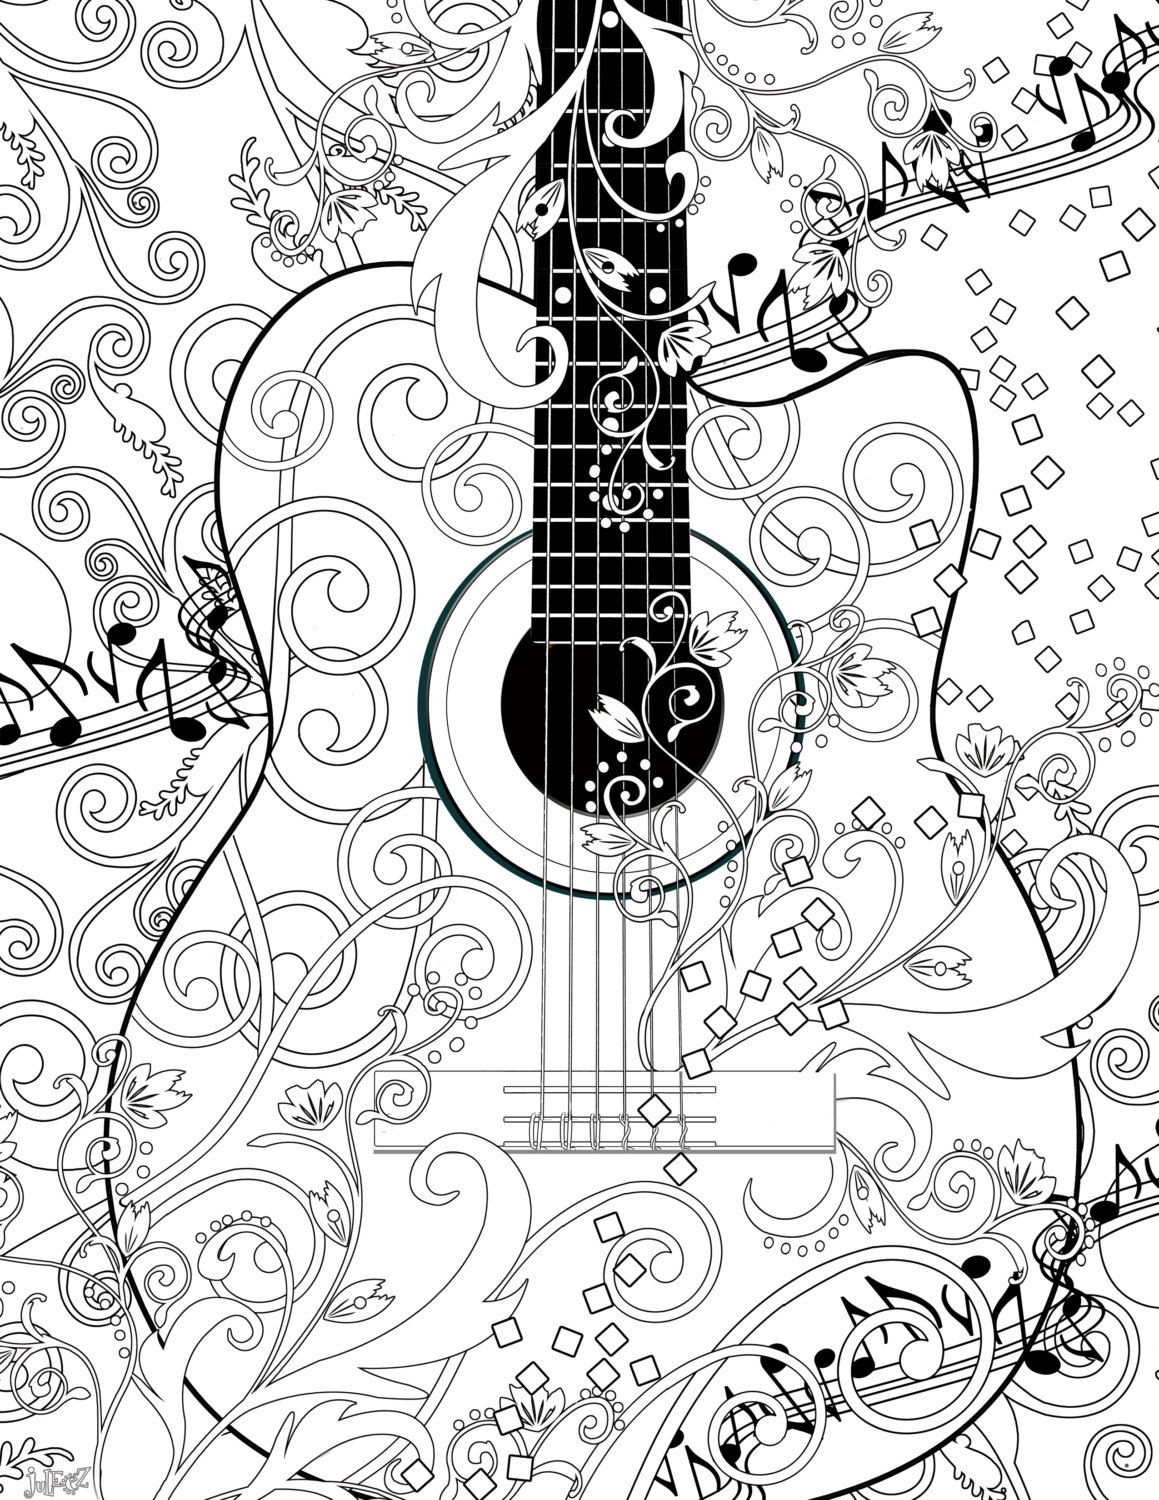 Coloring Poster Printable Music Coloring Poster Instant Download By Juleez Design For Diy Coloring Pages Color Adult Coloring Pages